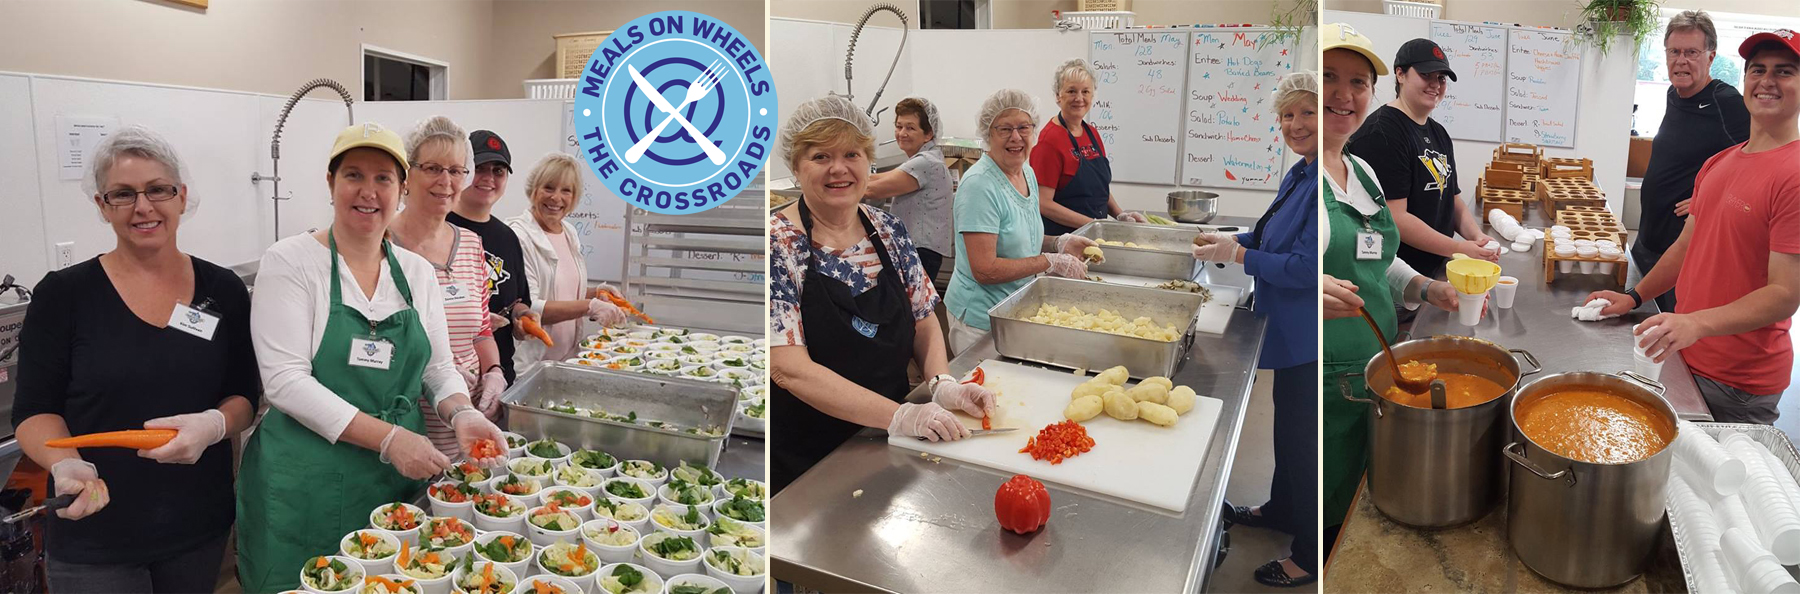 Photos of volunteers preparing meals